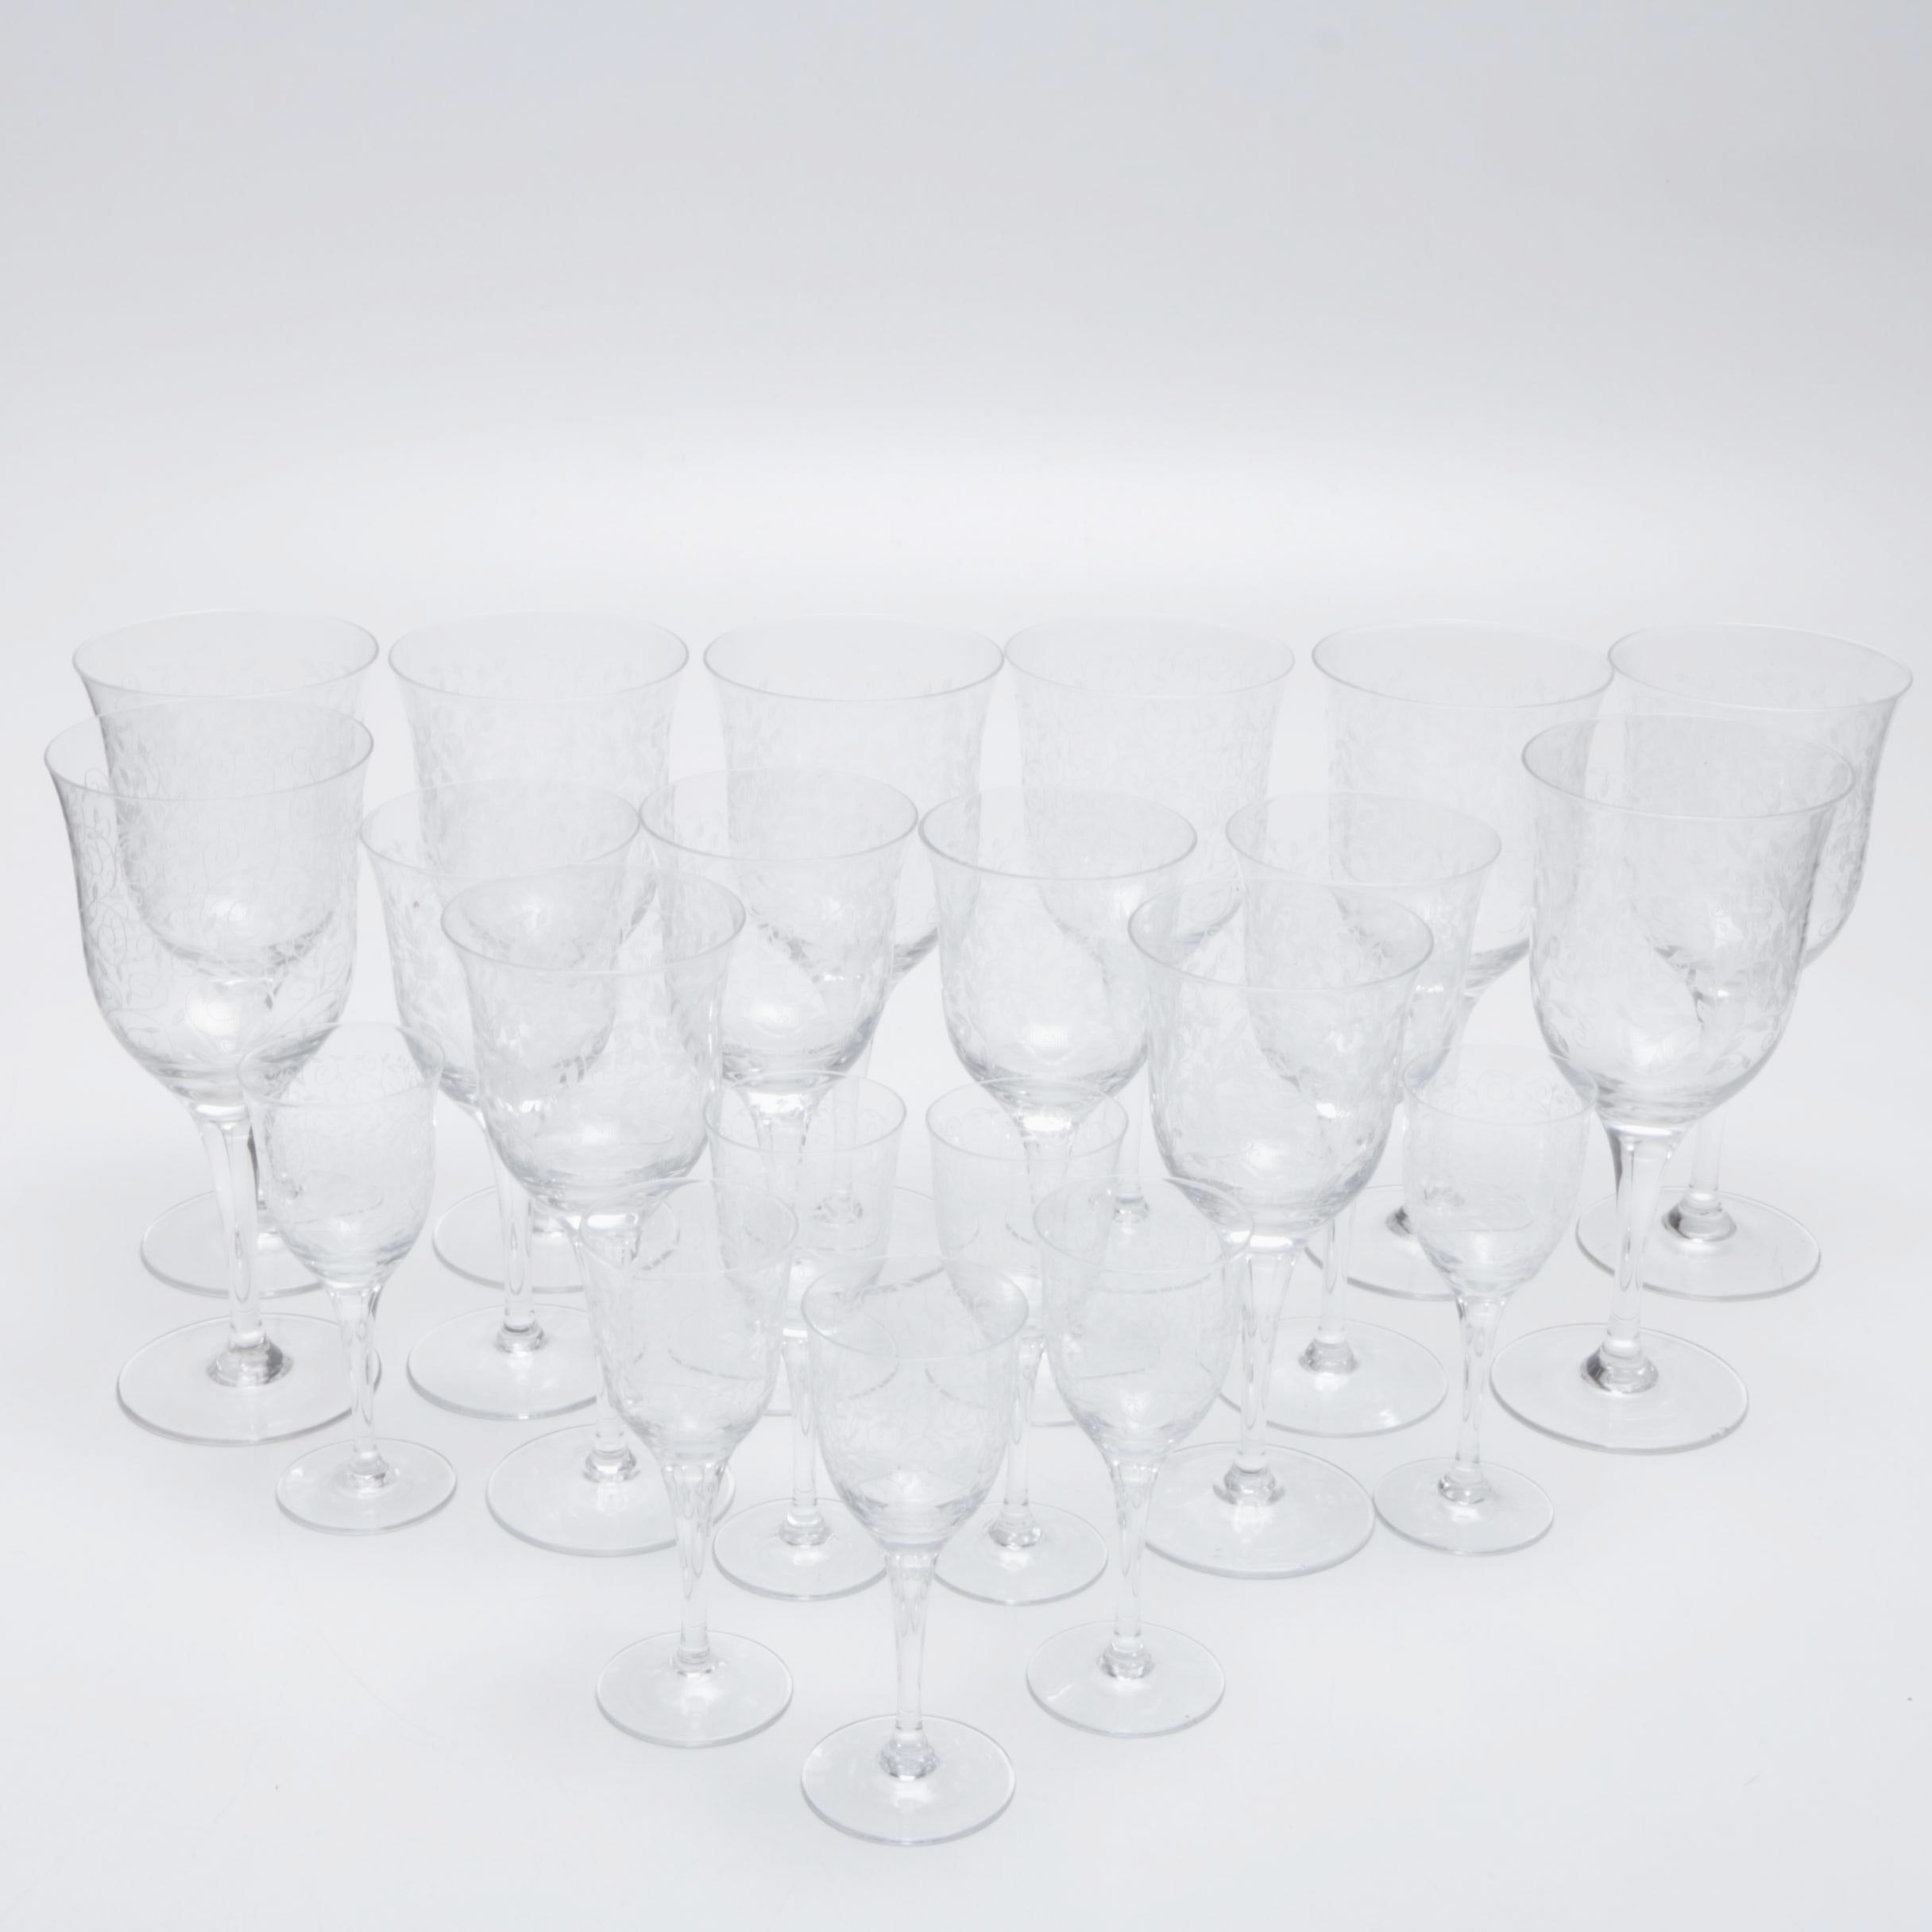 Collection of Etched Glass Stemware